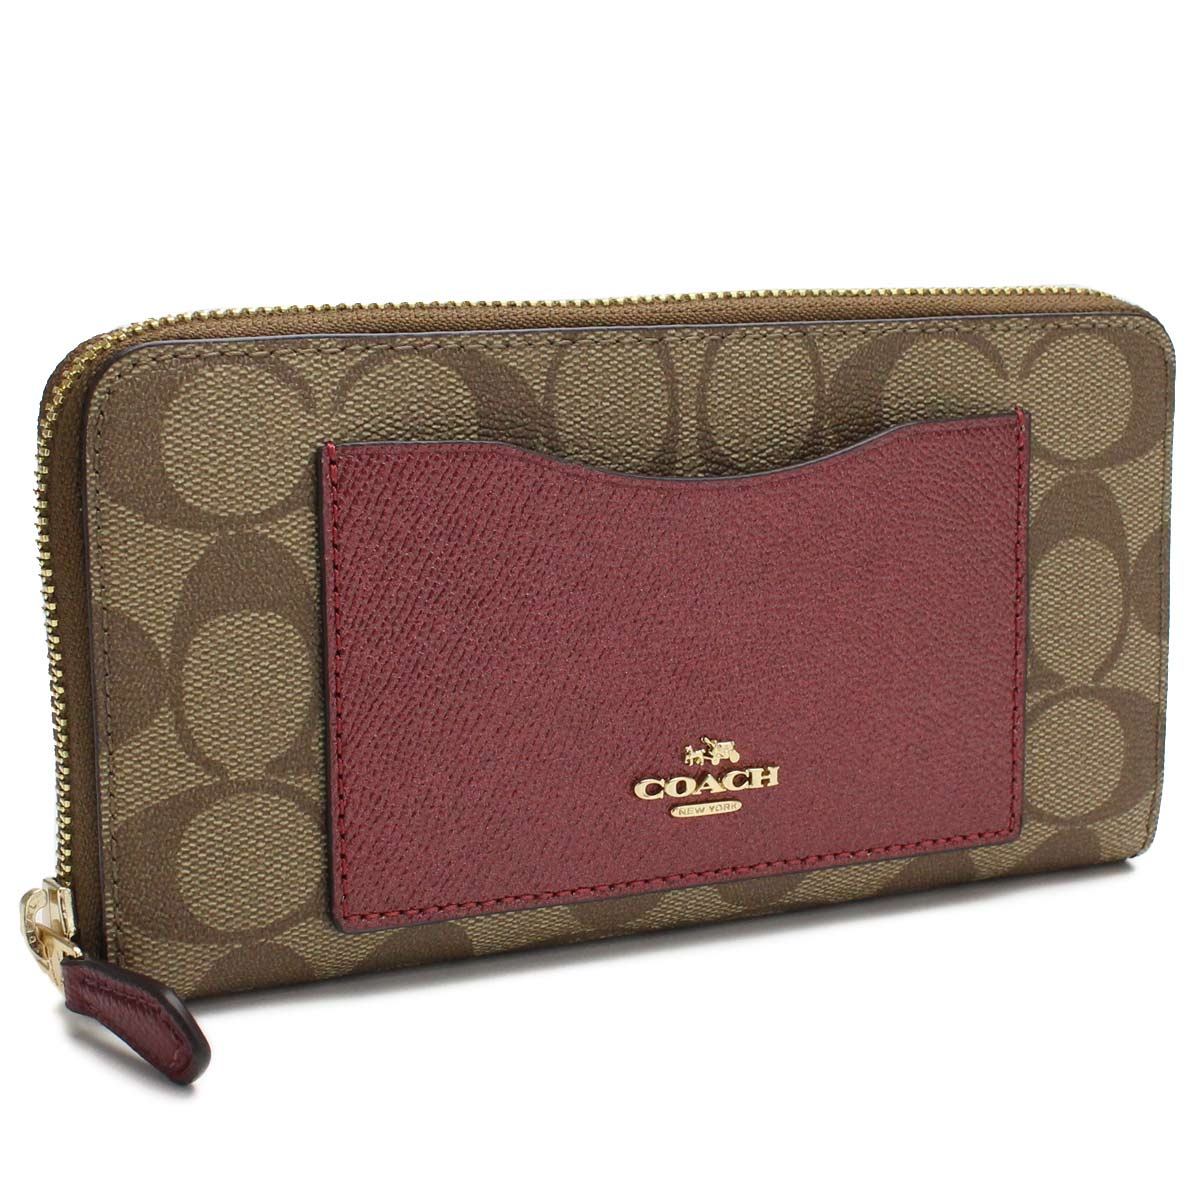 064ba3c02e Bighit The total brand wholesale: Red system of coach COACH wallet  signature round fastener long wallet F22712 IMMWK Brown line | Rakuten  Global Market